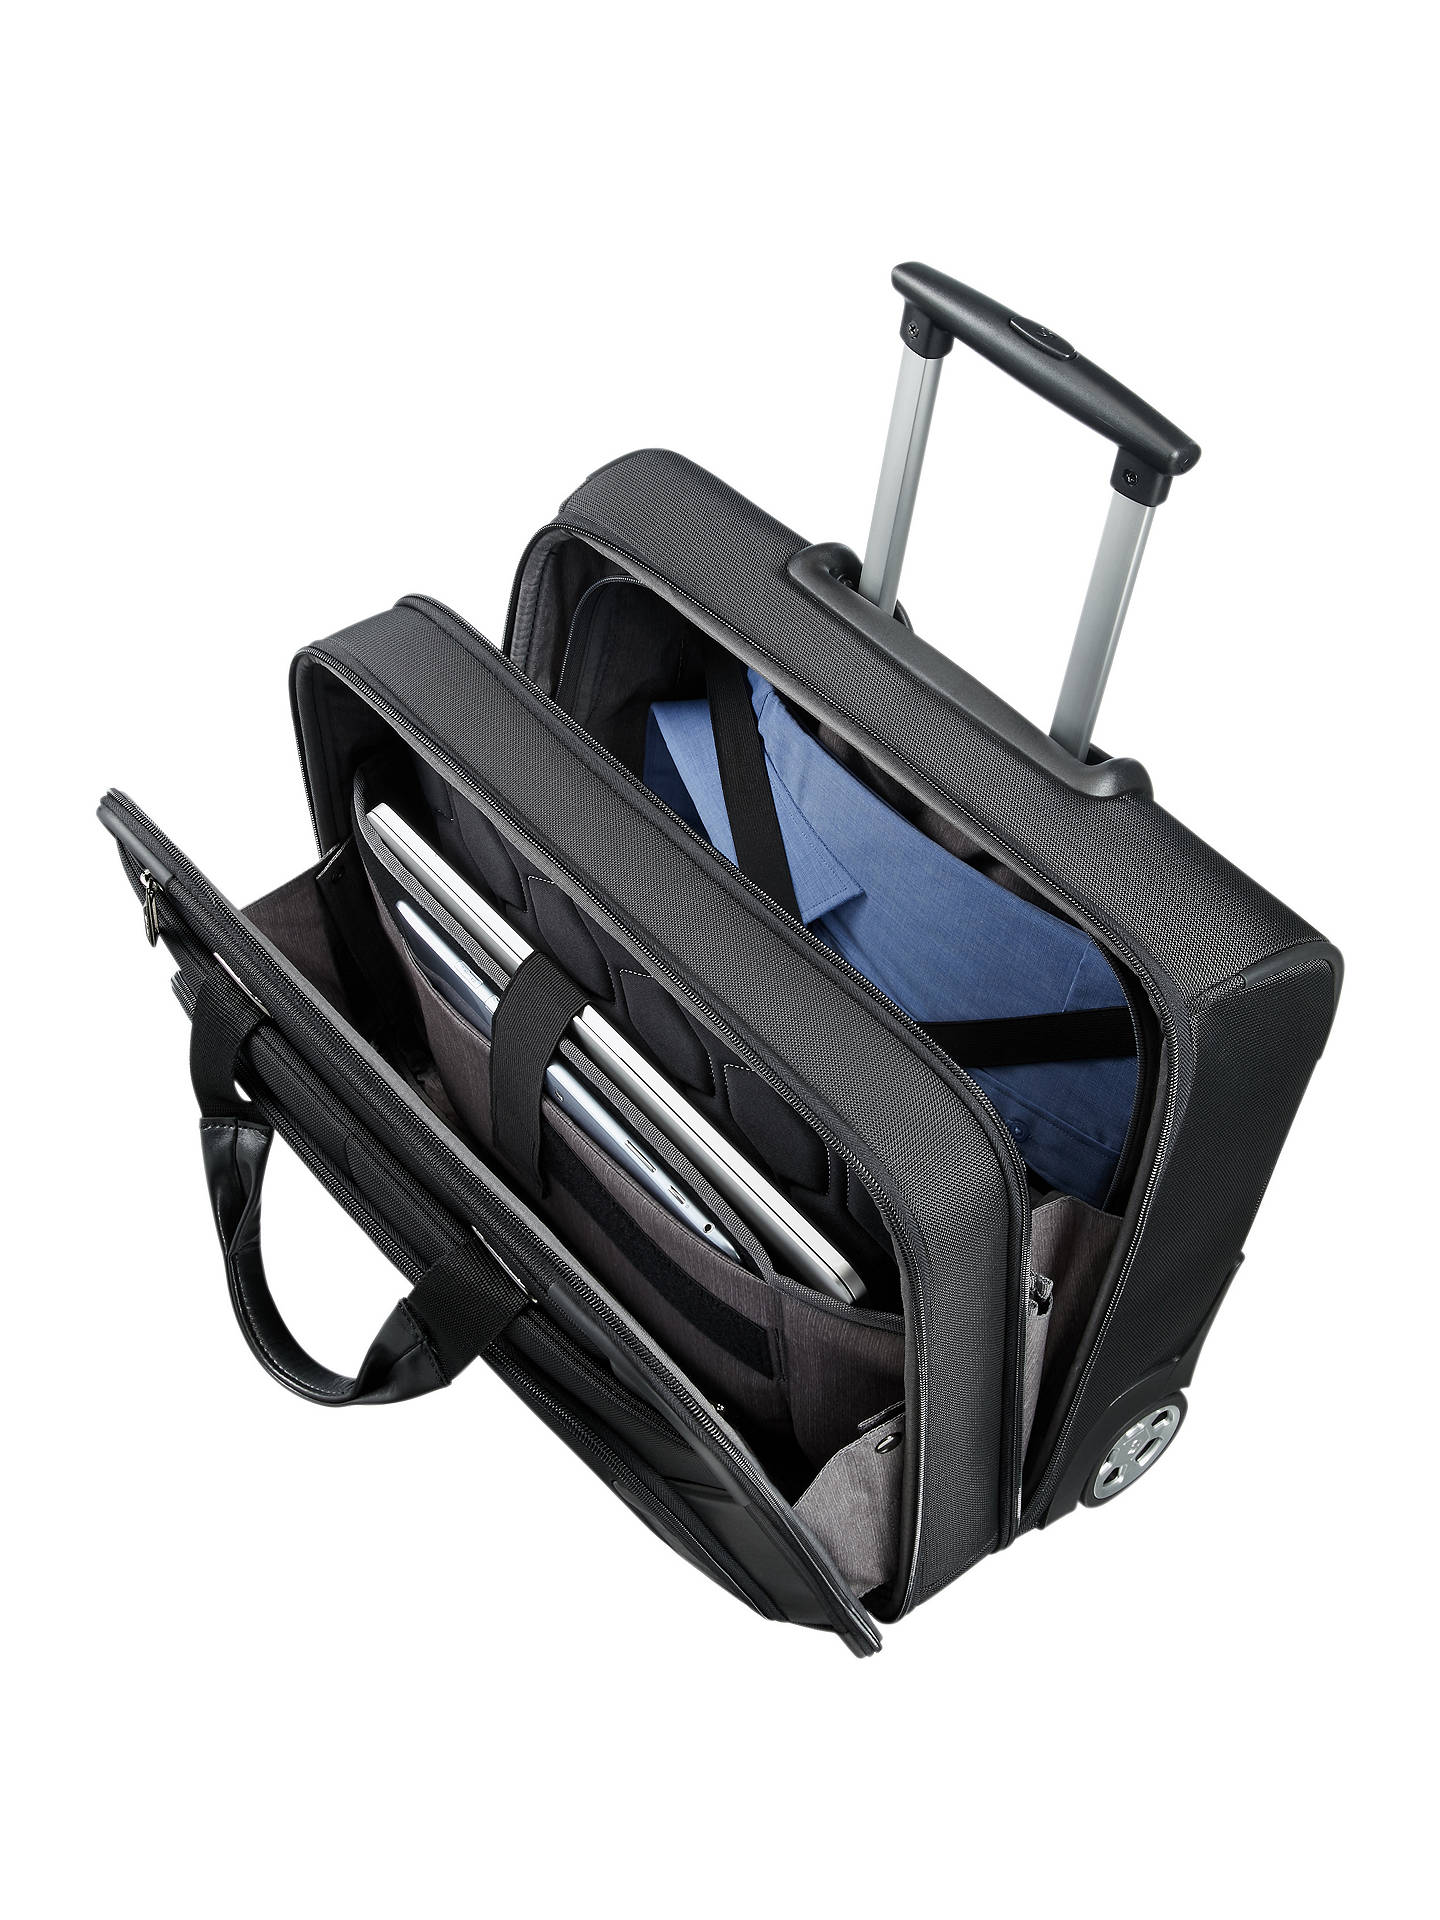 Buy Samsonite XBR 40cm Rolling Tote Case, Black Online at johnlewis.com